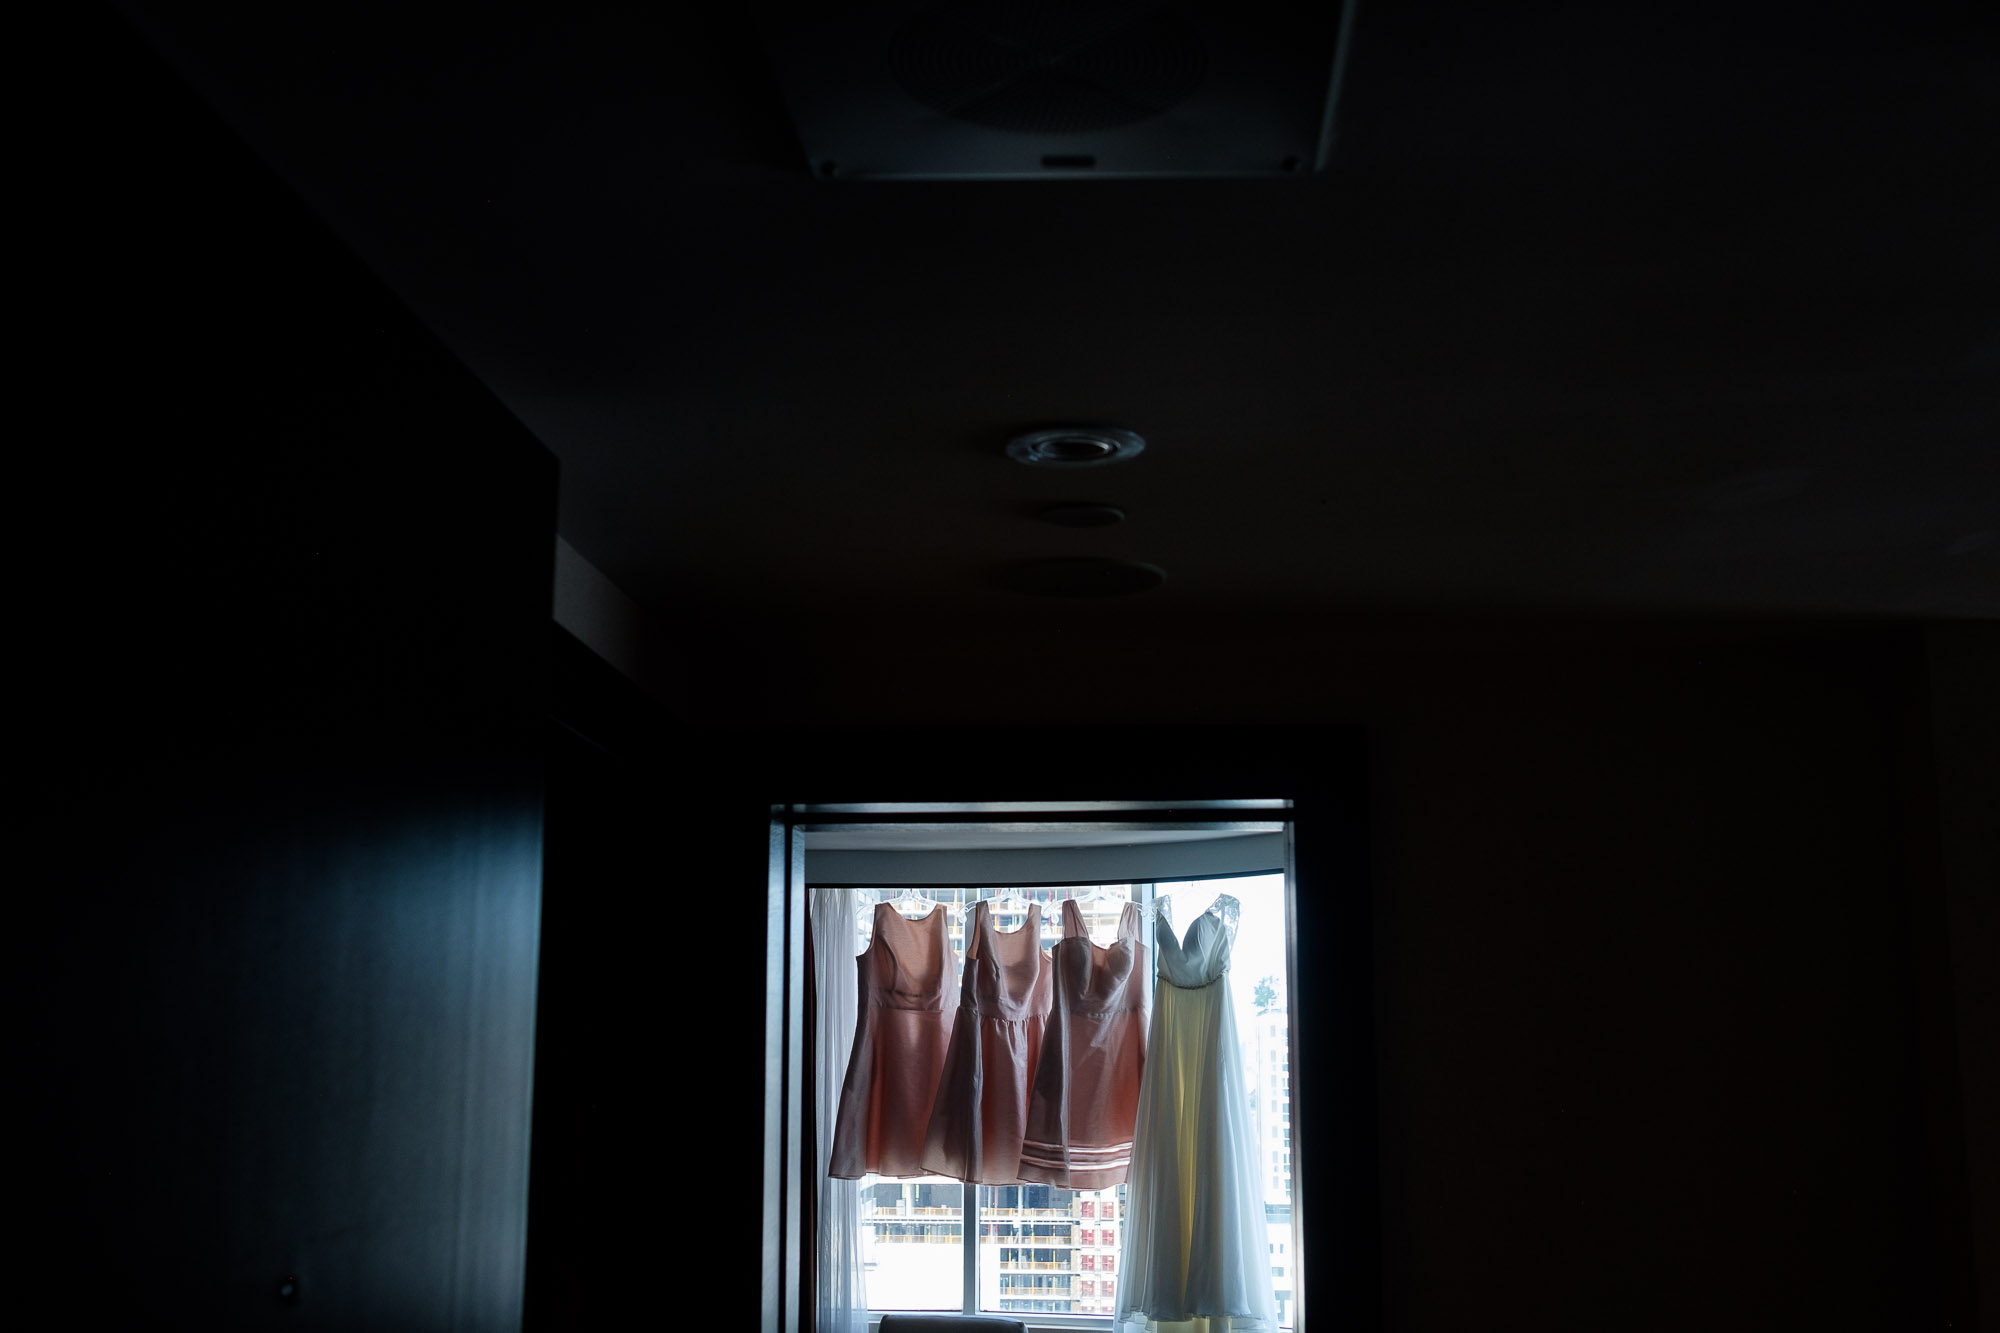 A wedding detail photograph of the brides and bridesmaid dresses hanging up in Katherine's suite at the Hyatt Toronto.